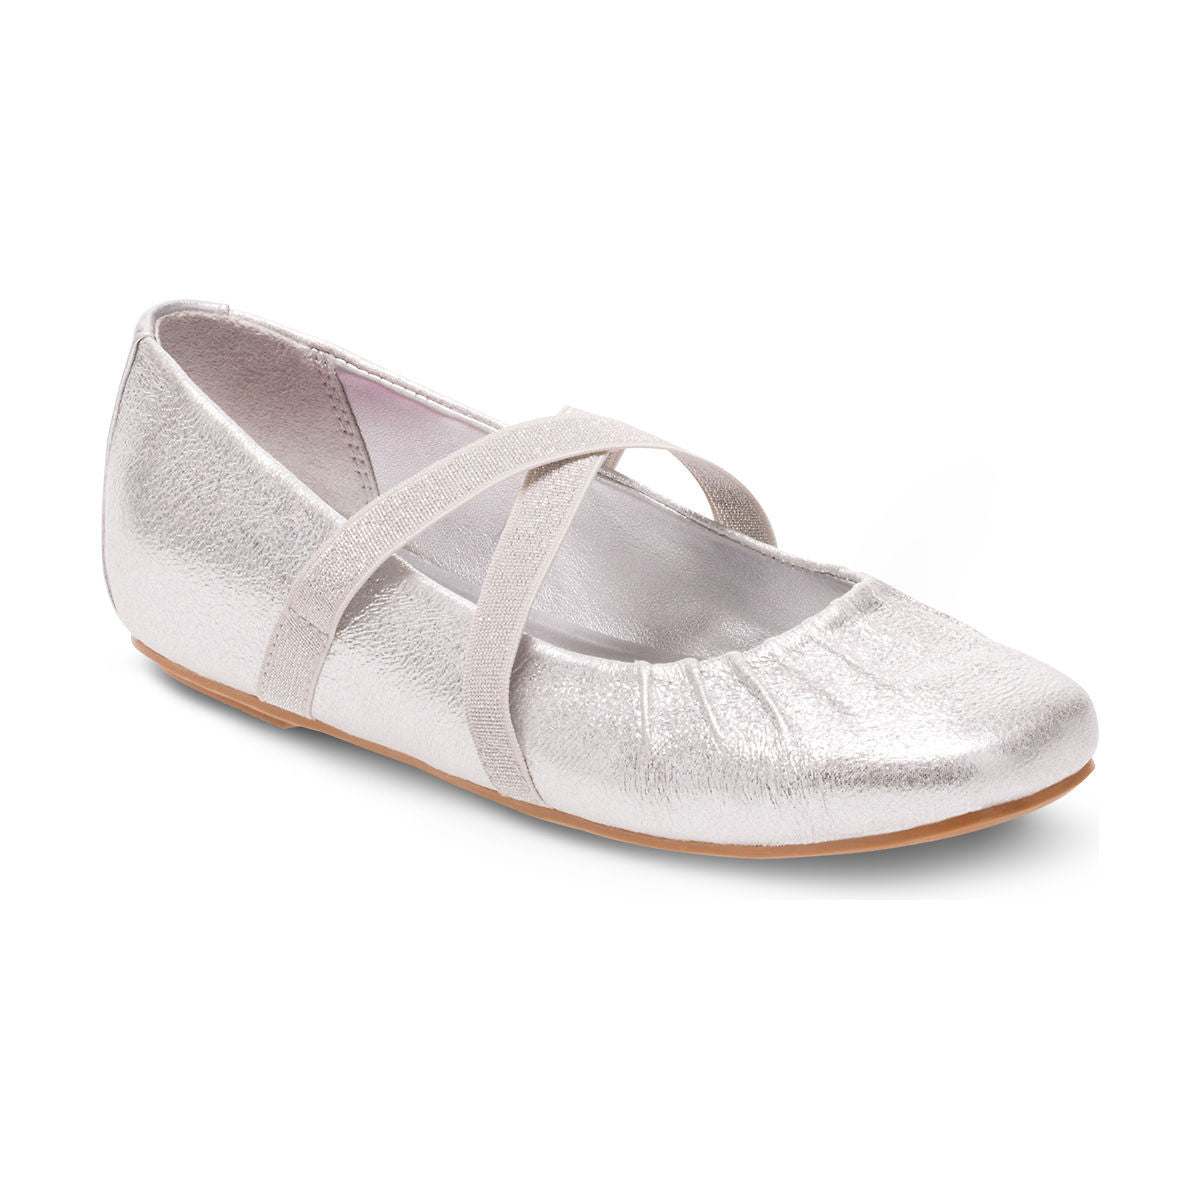 Hush Puppies Silver Brenna Little Kid Ballet Flat